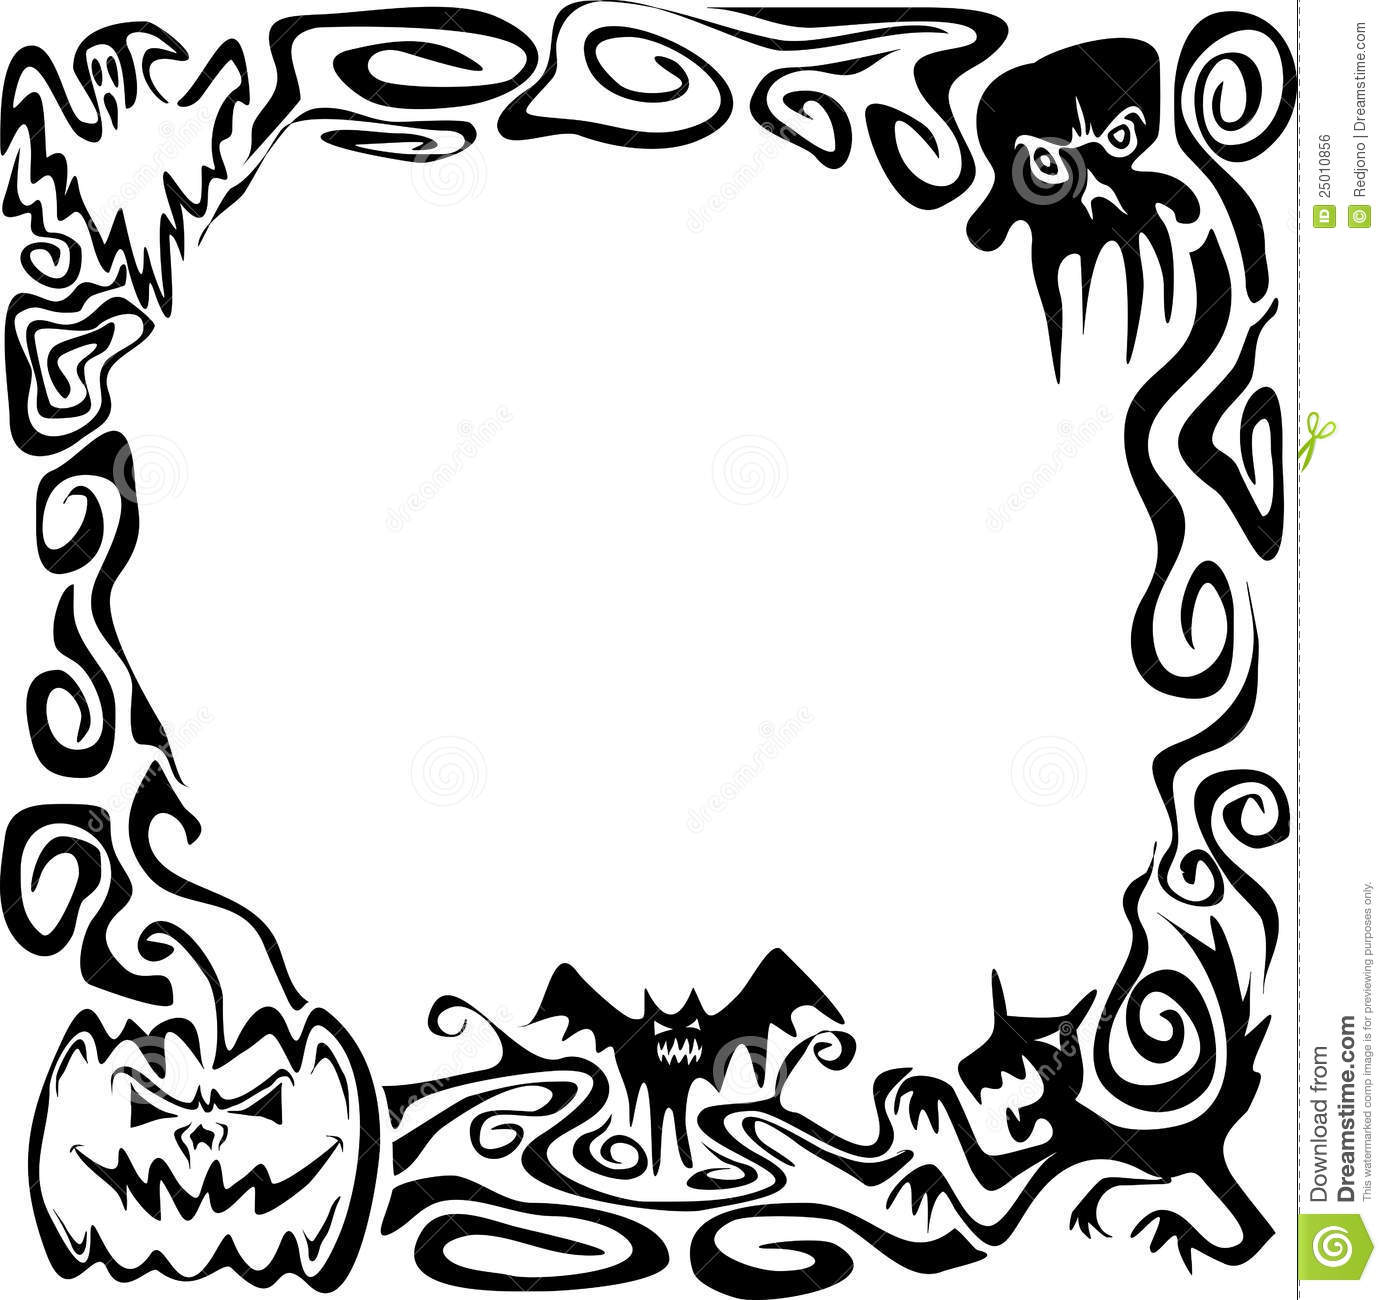 Halloween Clipart Black And White Borders